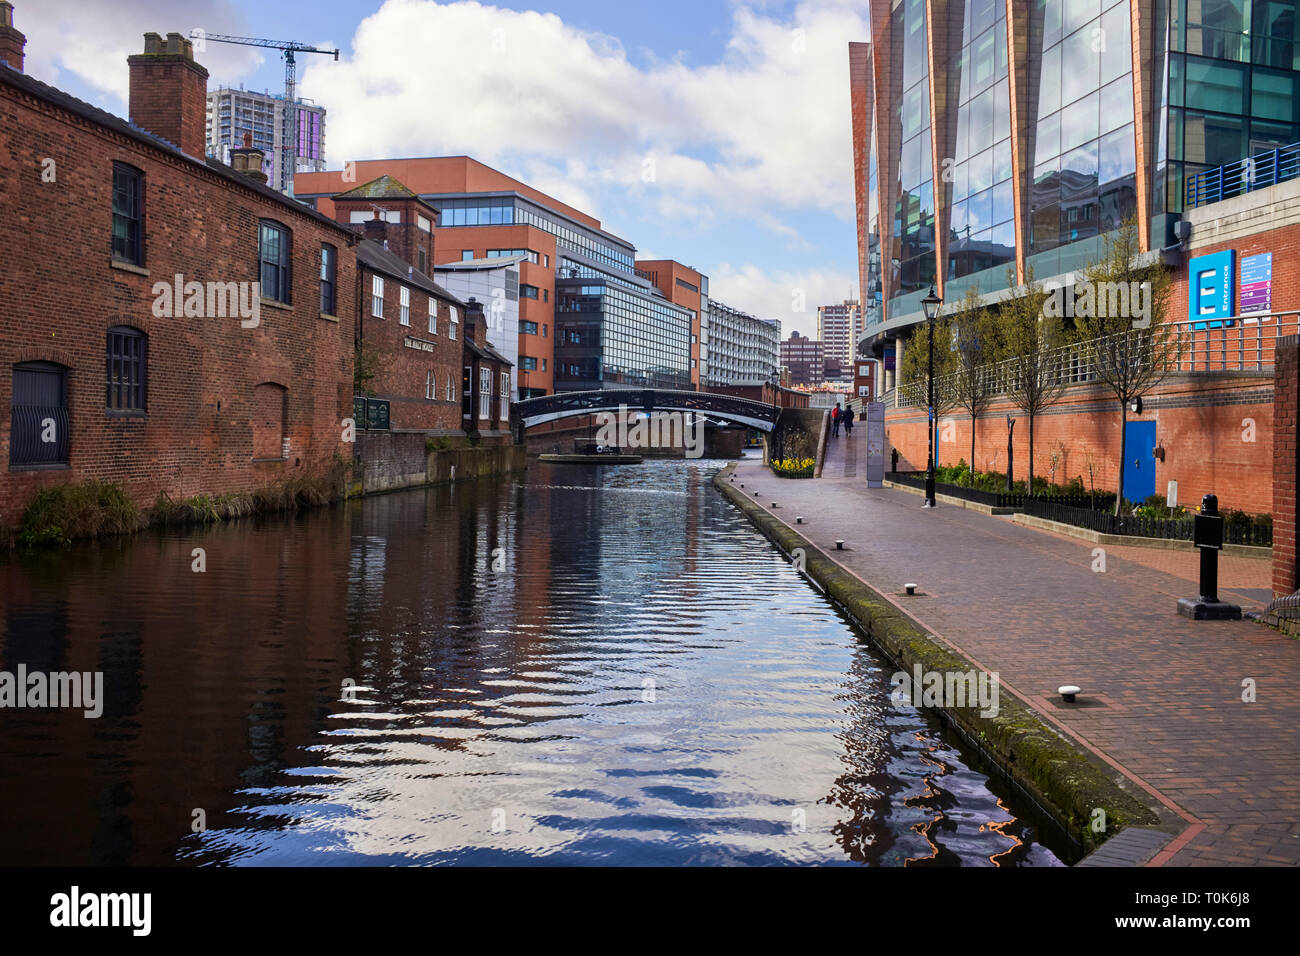 View toward Tyndall Bridge and the junction into Gas Street basin in Central Birminham canal network - Stock Image